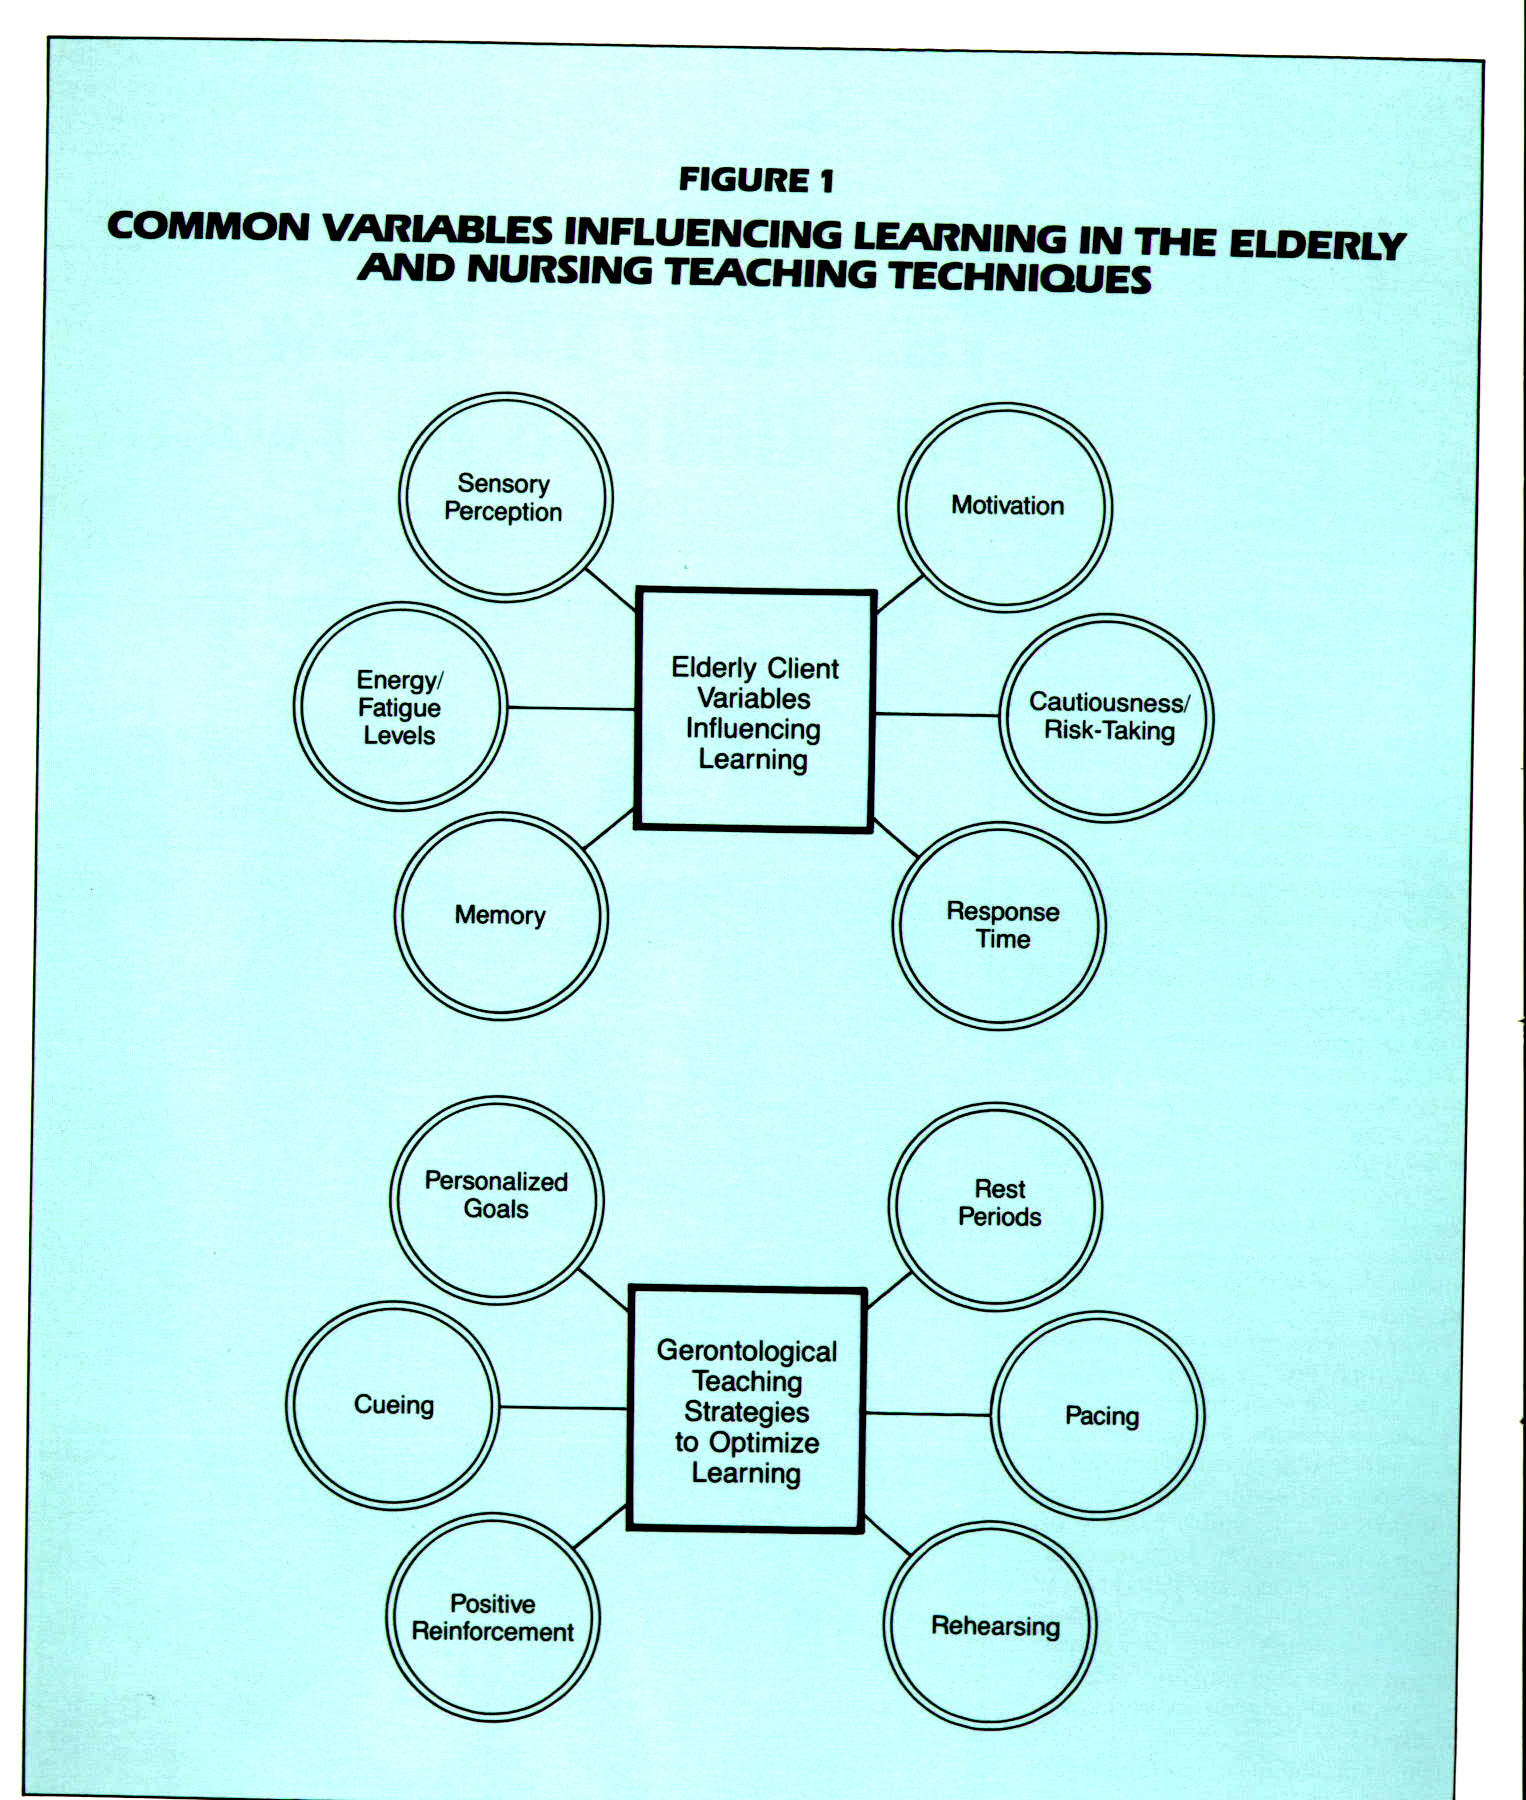 FIGURE 1COMMON VARIABLES INFLUENCING LEARNING IN THE ELDERLY AND NURSING TEACHING TECHNIQUES